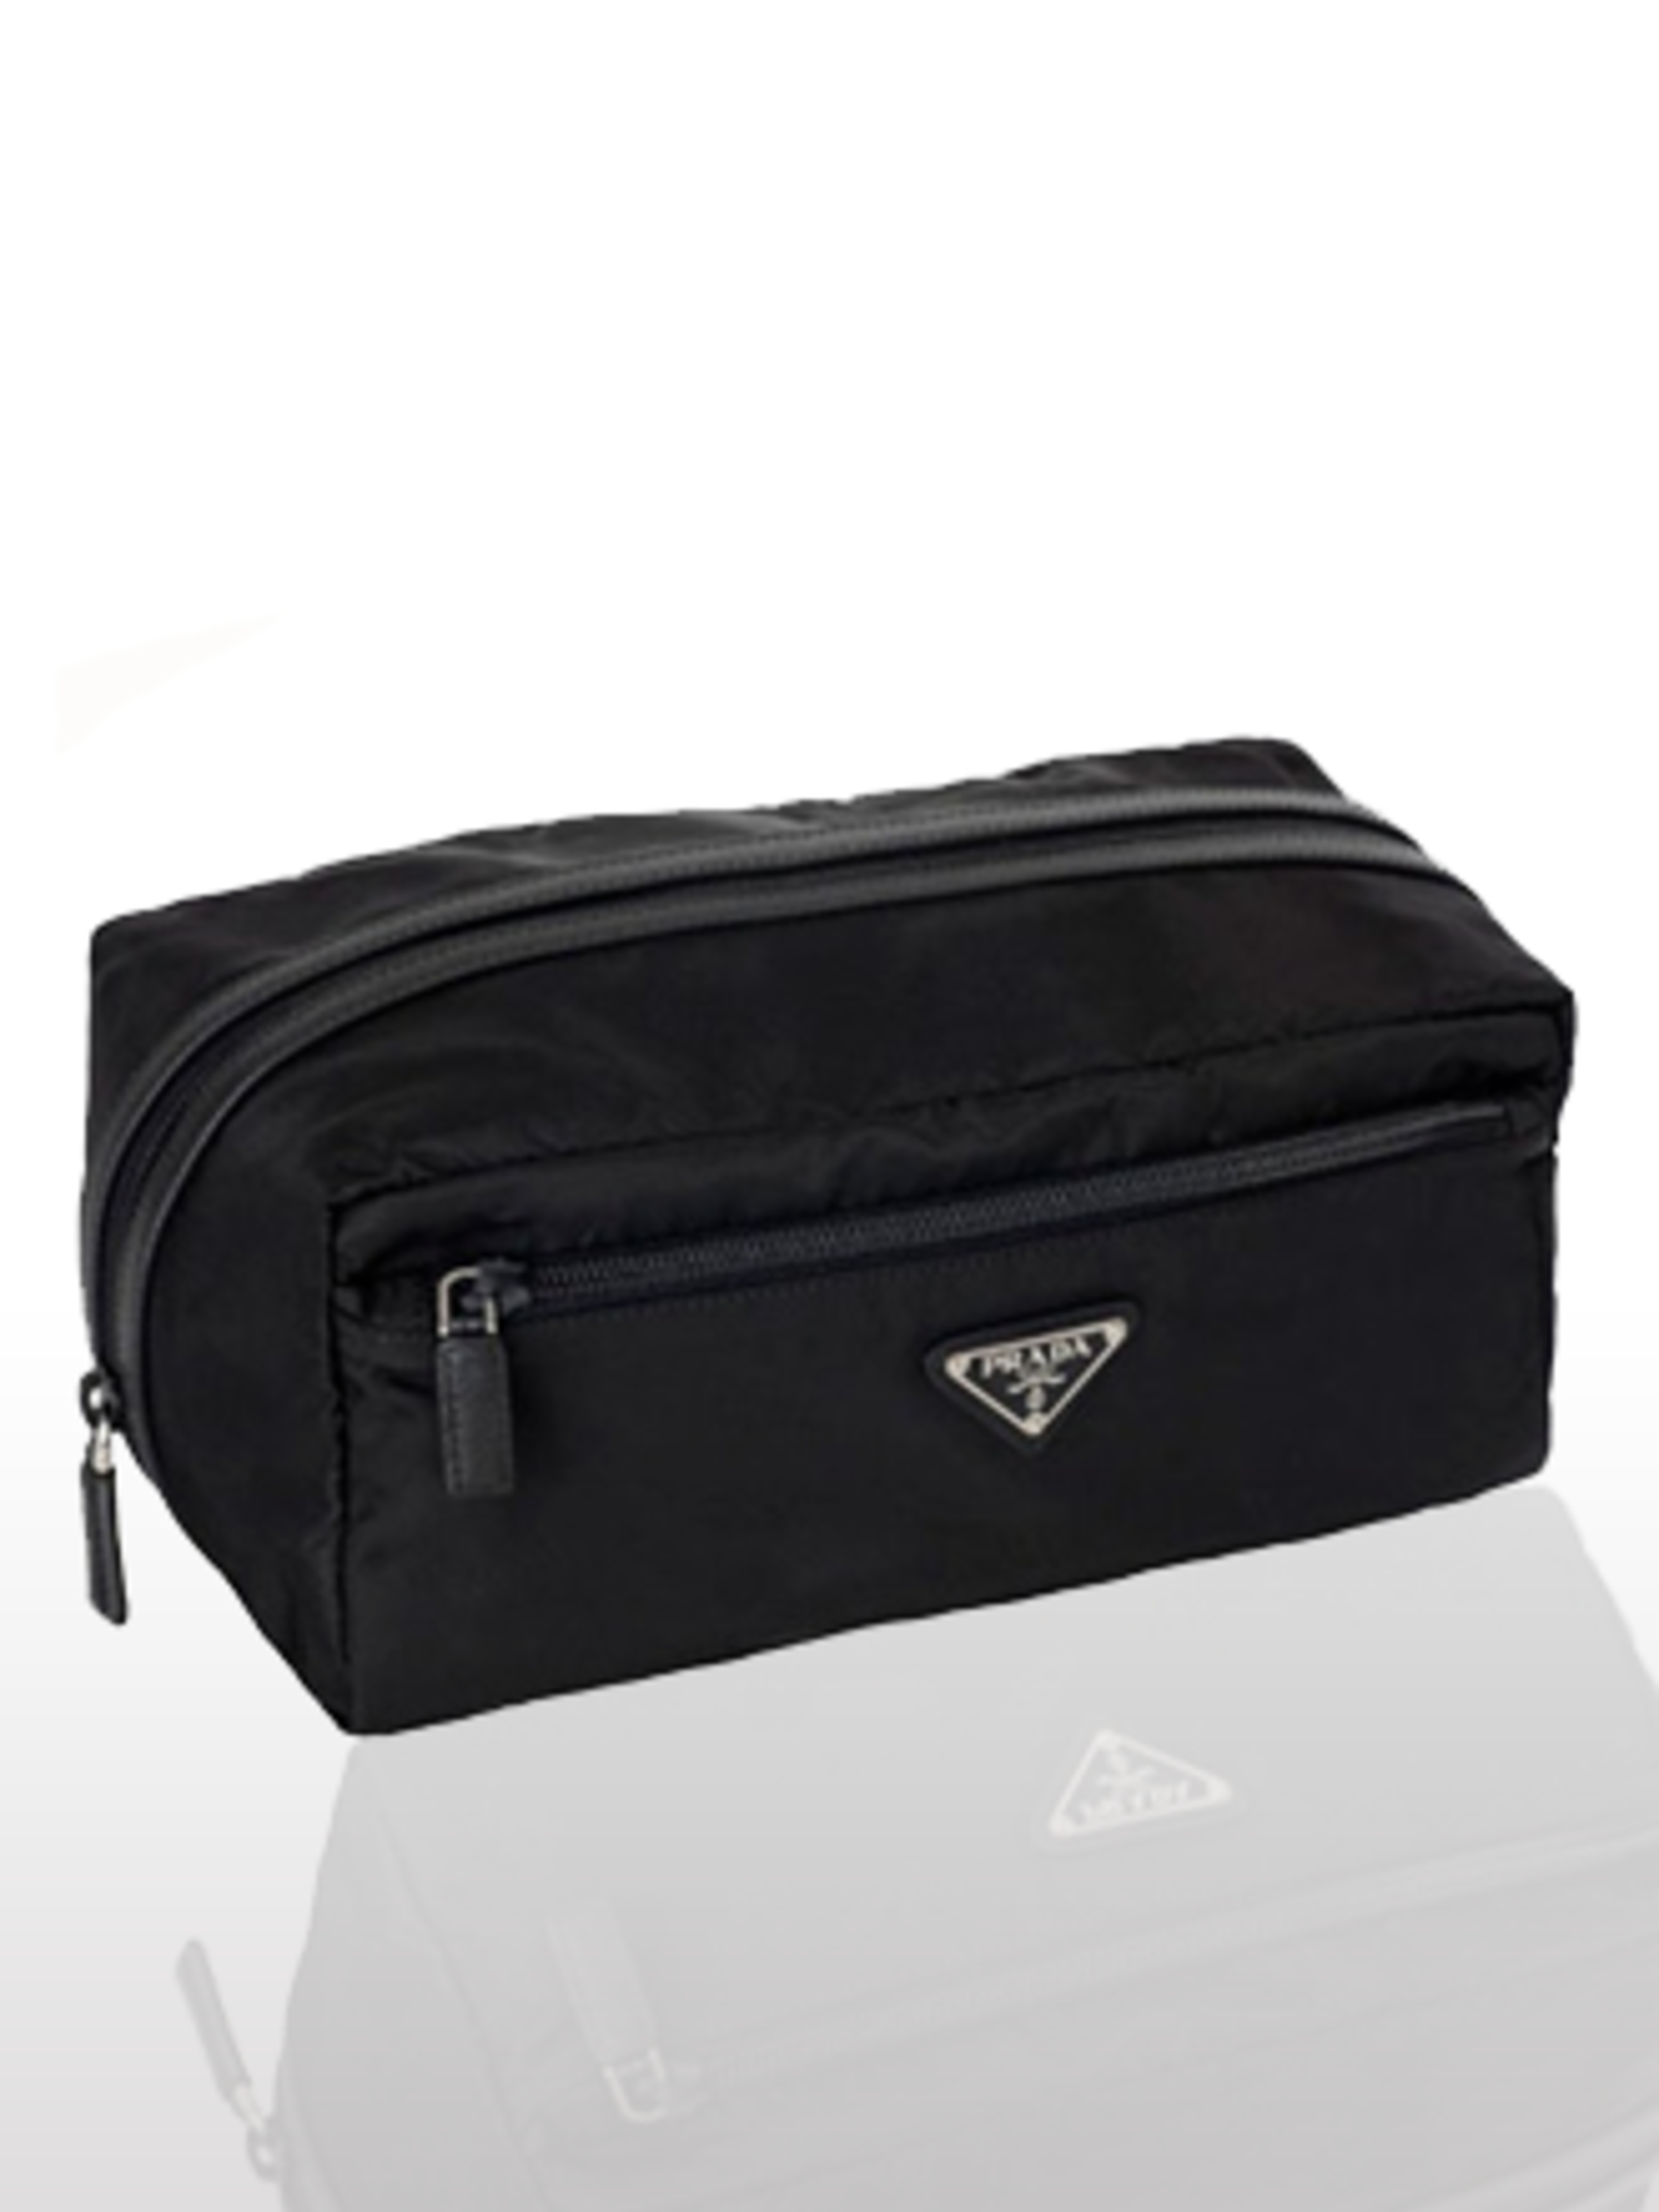 "<p>Make-up Bag, £130 by <a href=""http://www.prada.com/buy-online/?countryid=16%E2%8C%A9=en"">Prada</a></p><p>The elleuk.com team love Prada's functional, yet chic make-up bags. </p>"